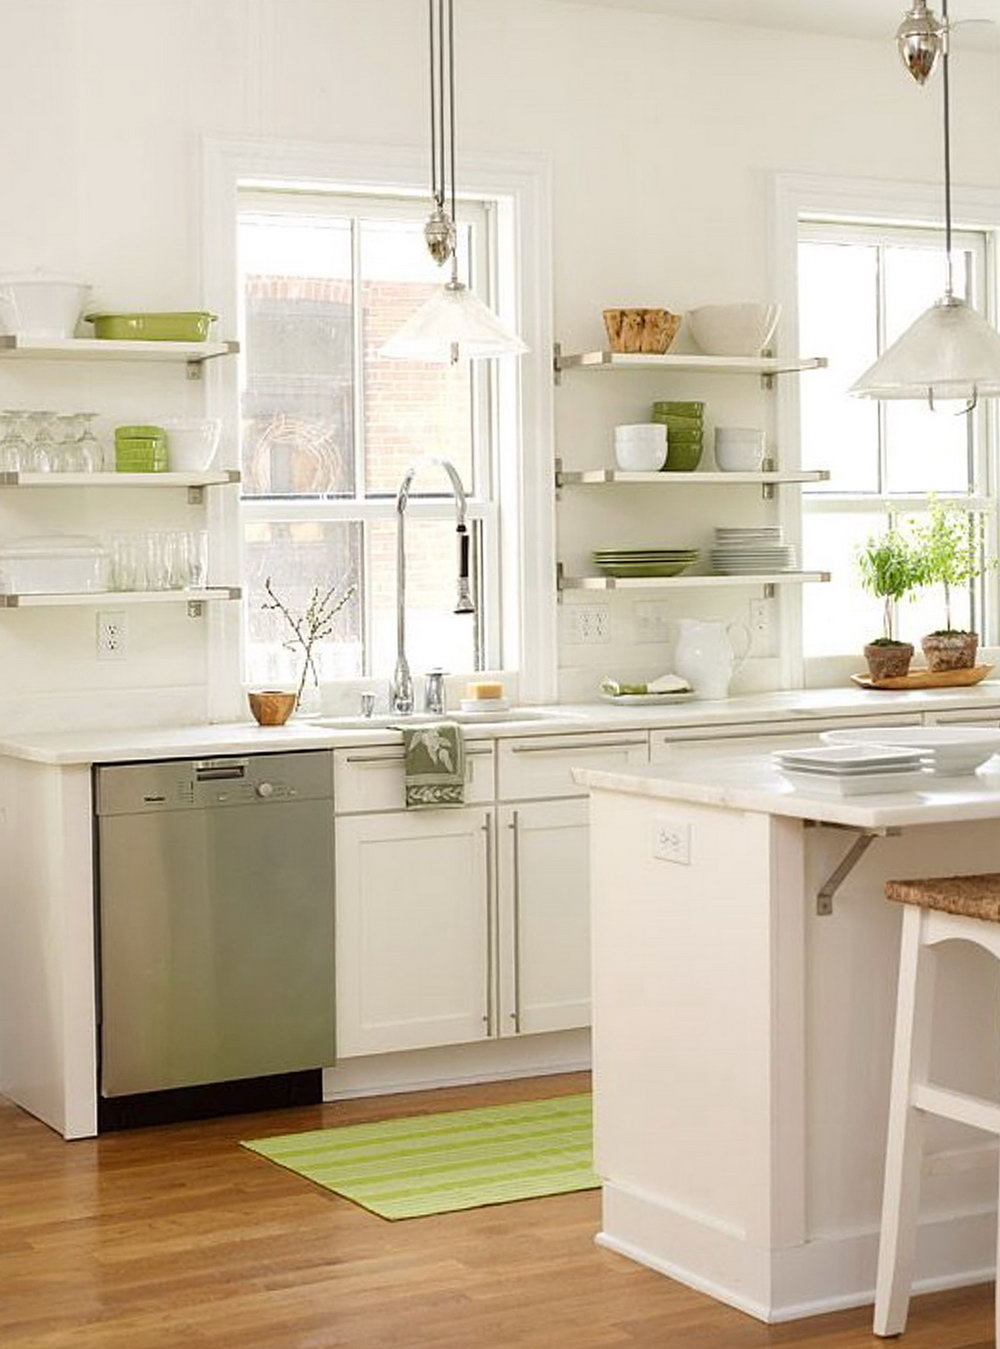 Replace Kitchen Cabinets With Shelves